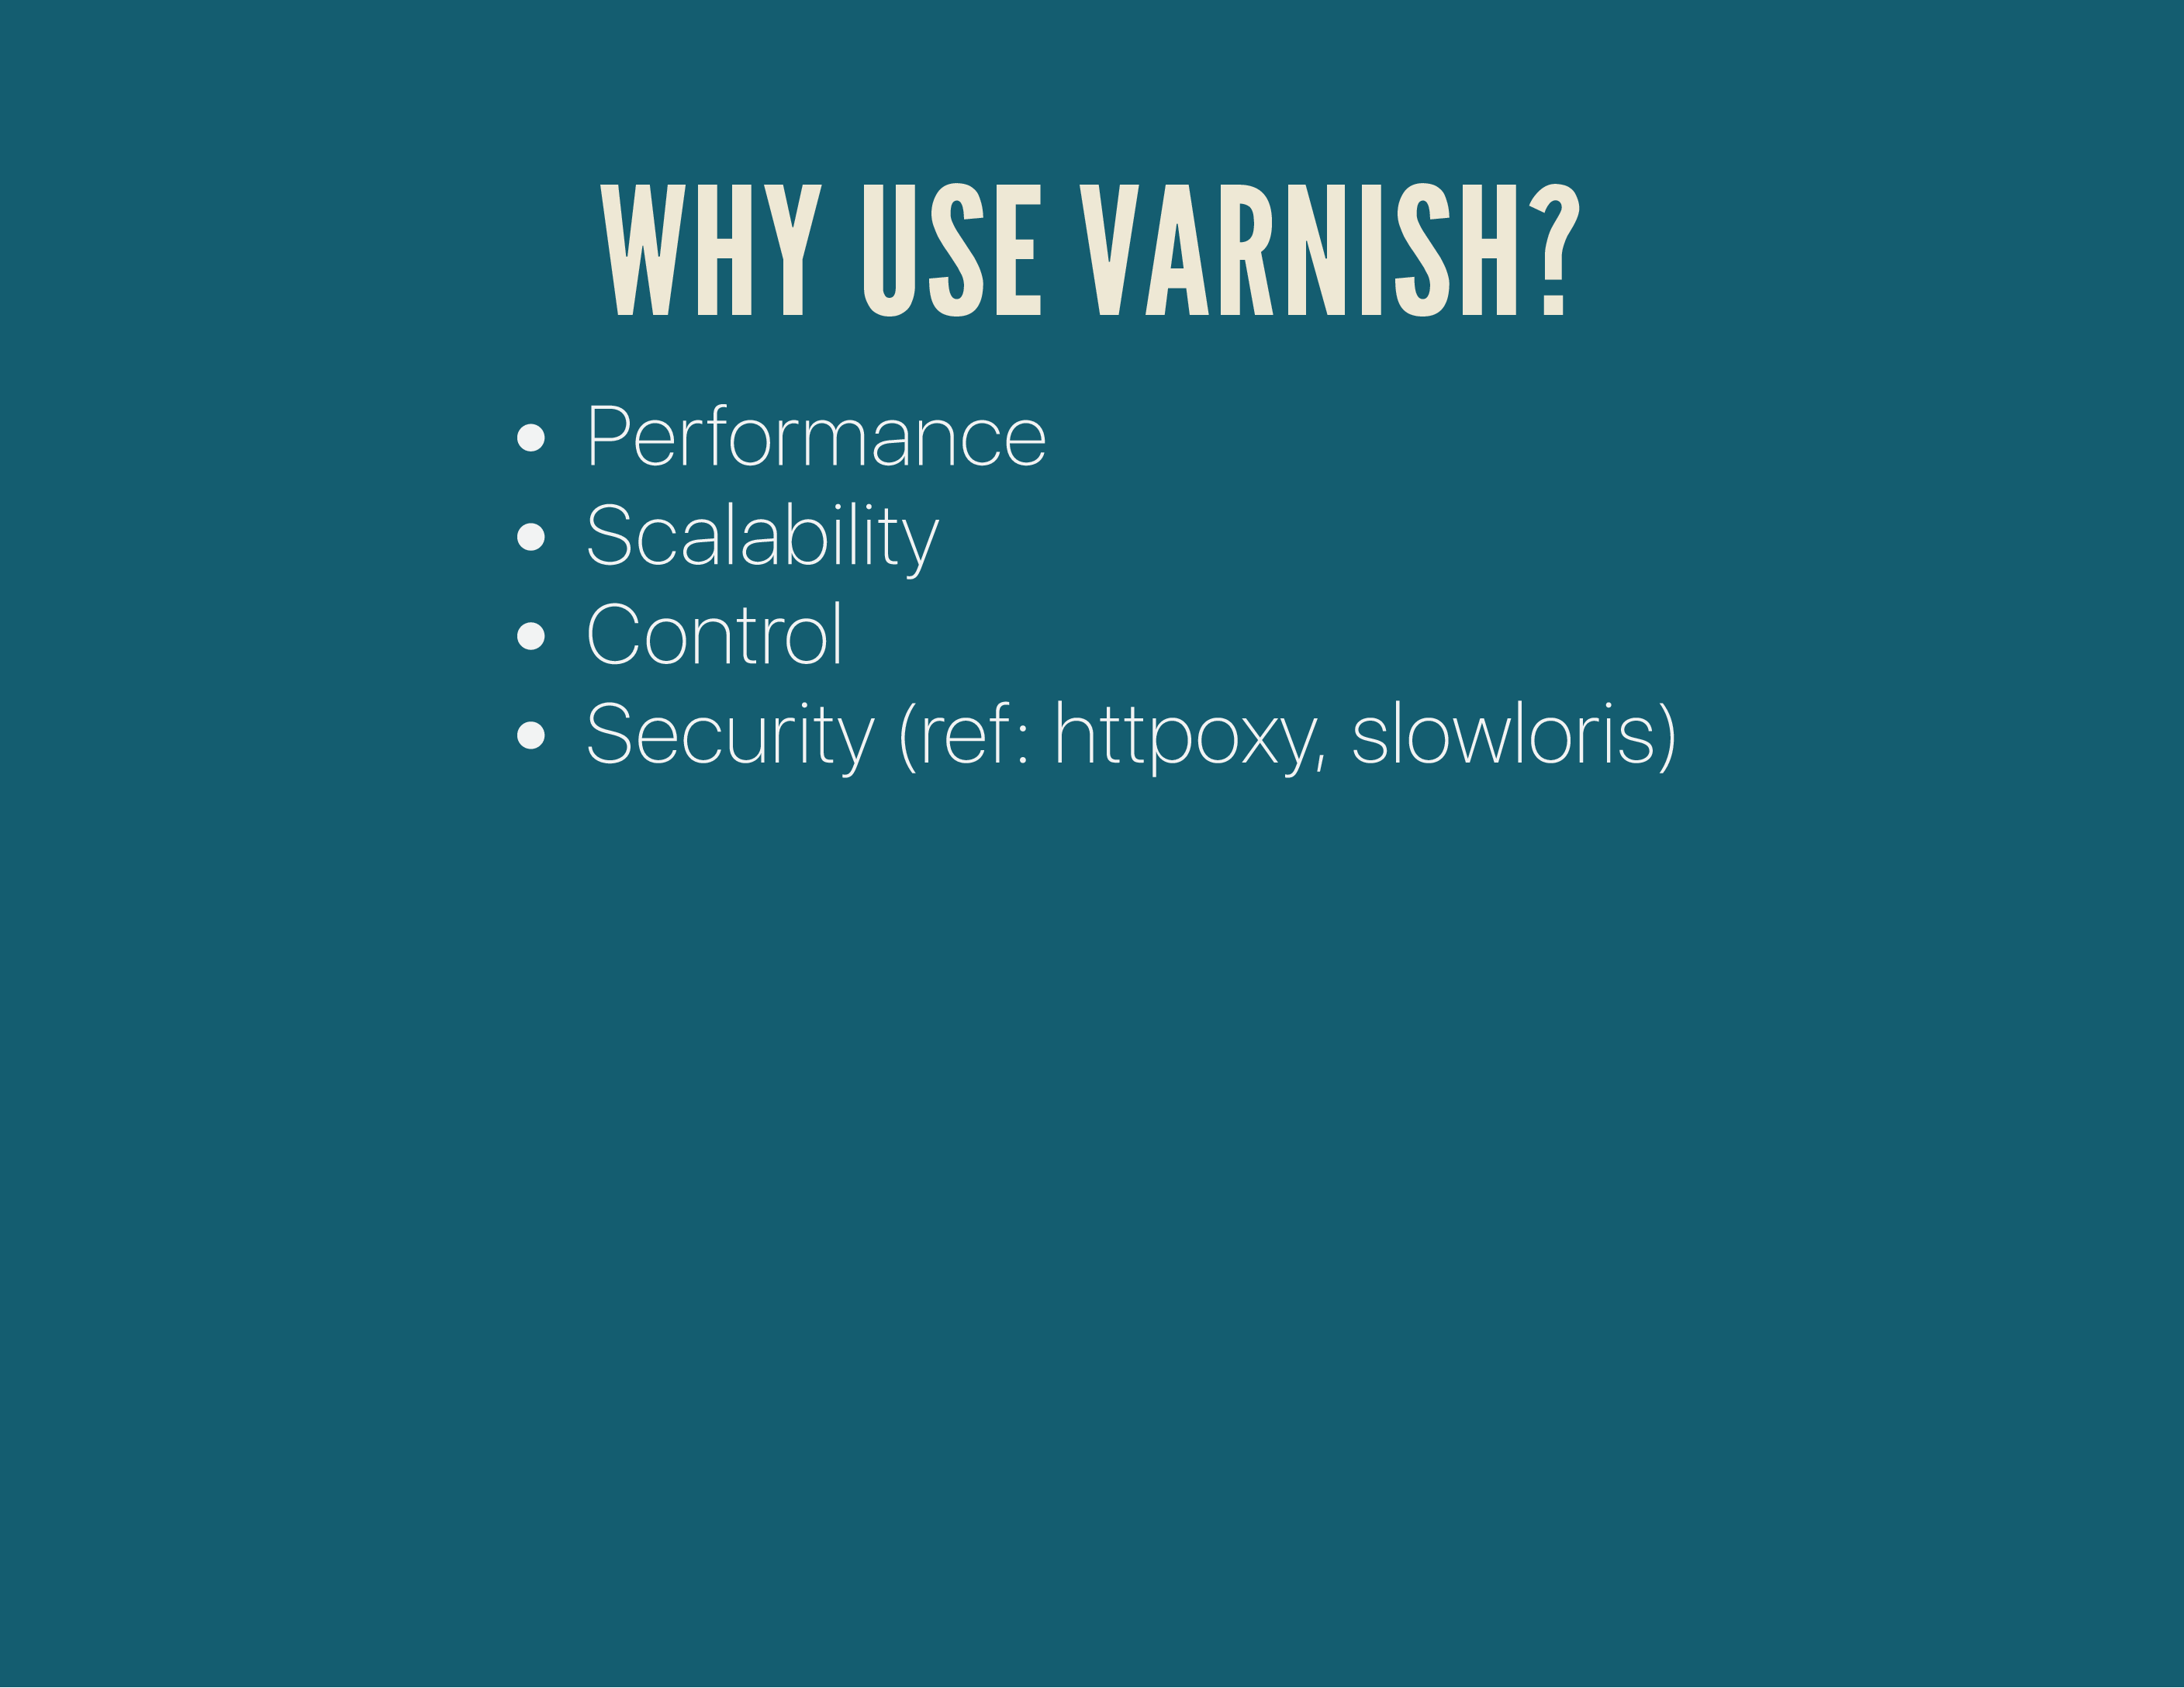 varnish_explained_007